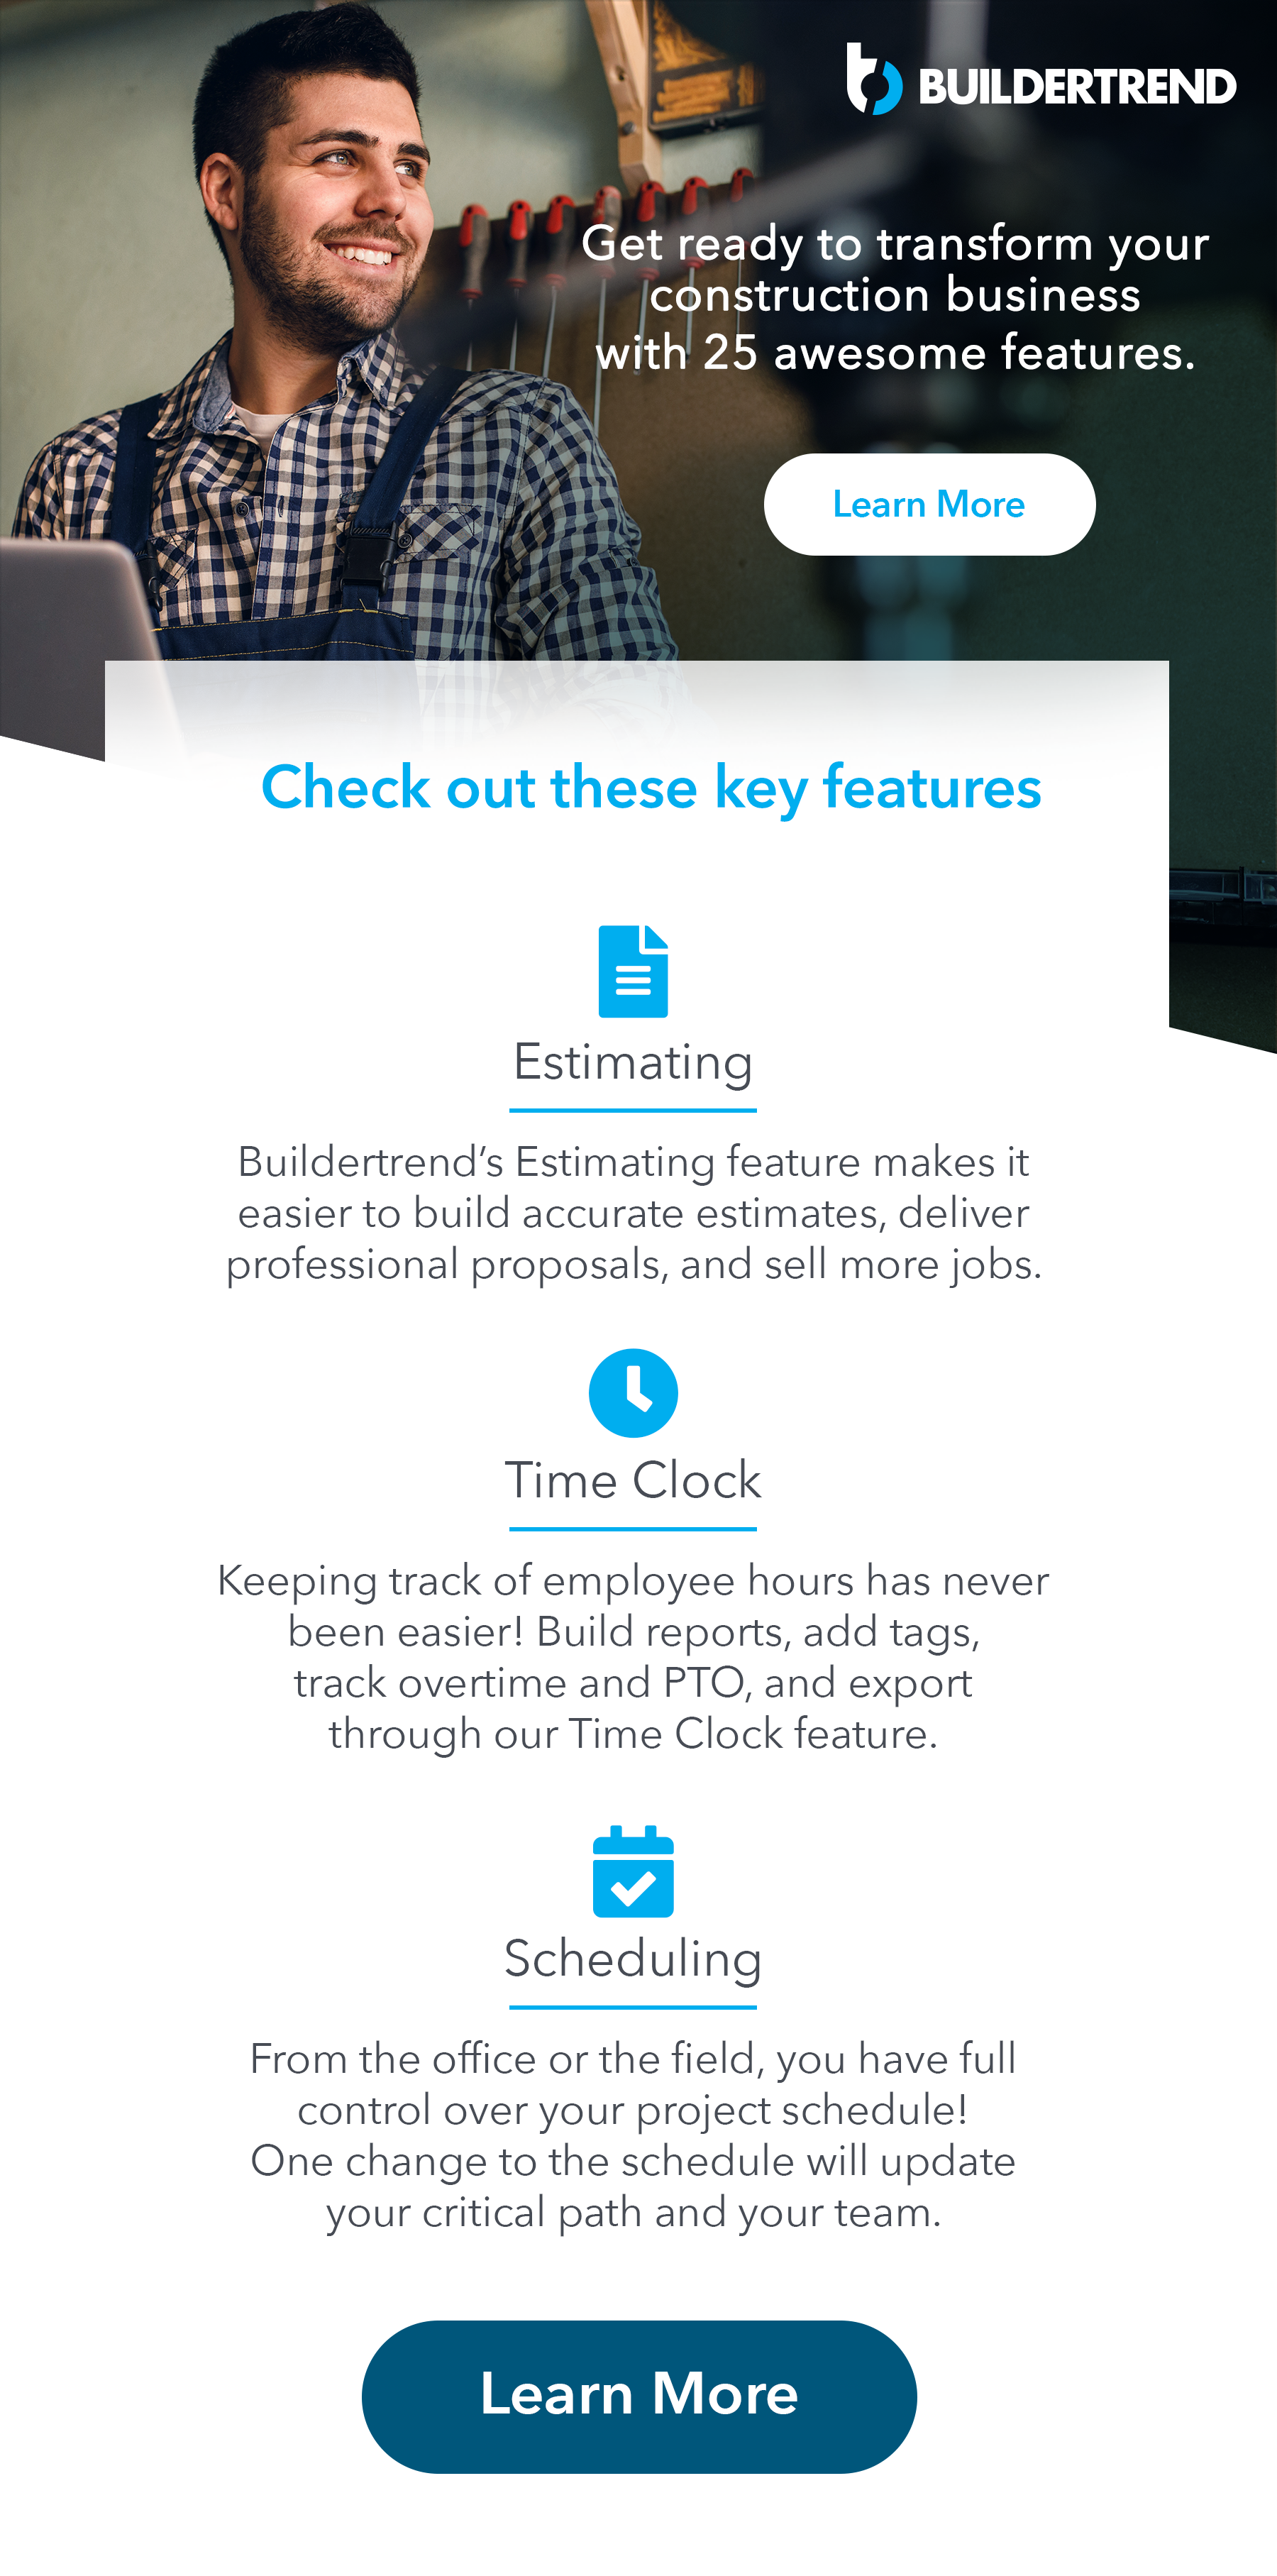 get ready to transform your business with 25 awesome features - estimating - time clock - scheduling - learn more